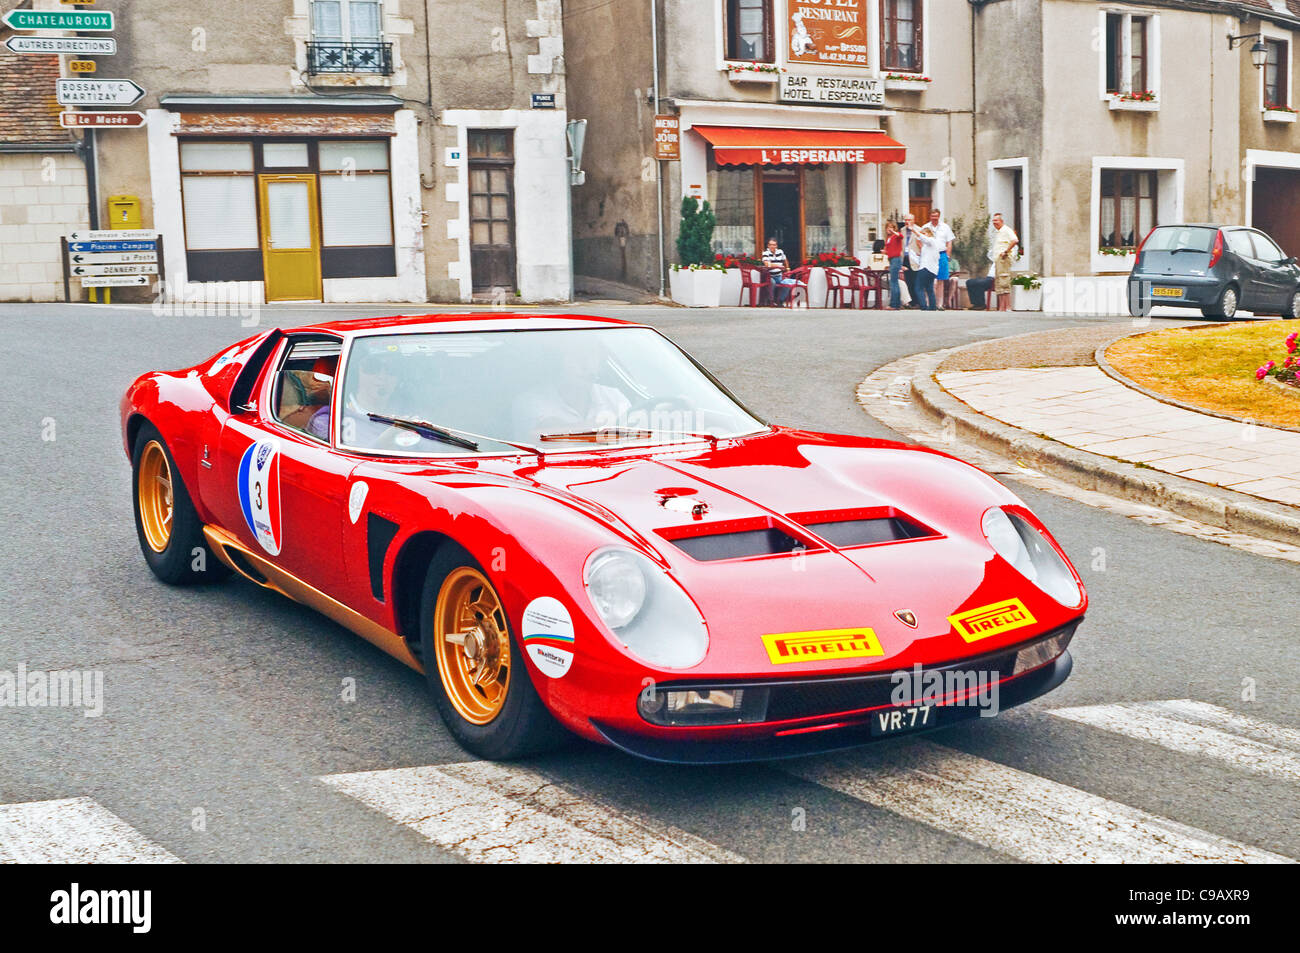 Italian Red Lamborghini Miura Classic Sports Car France Stock